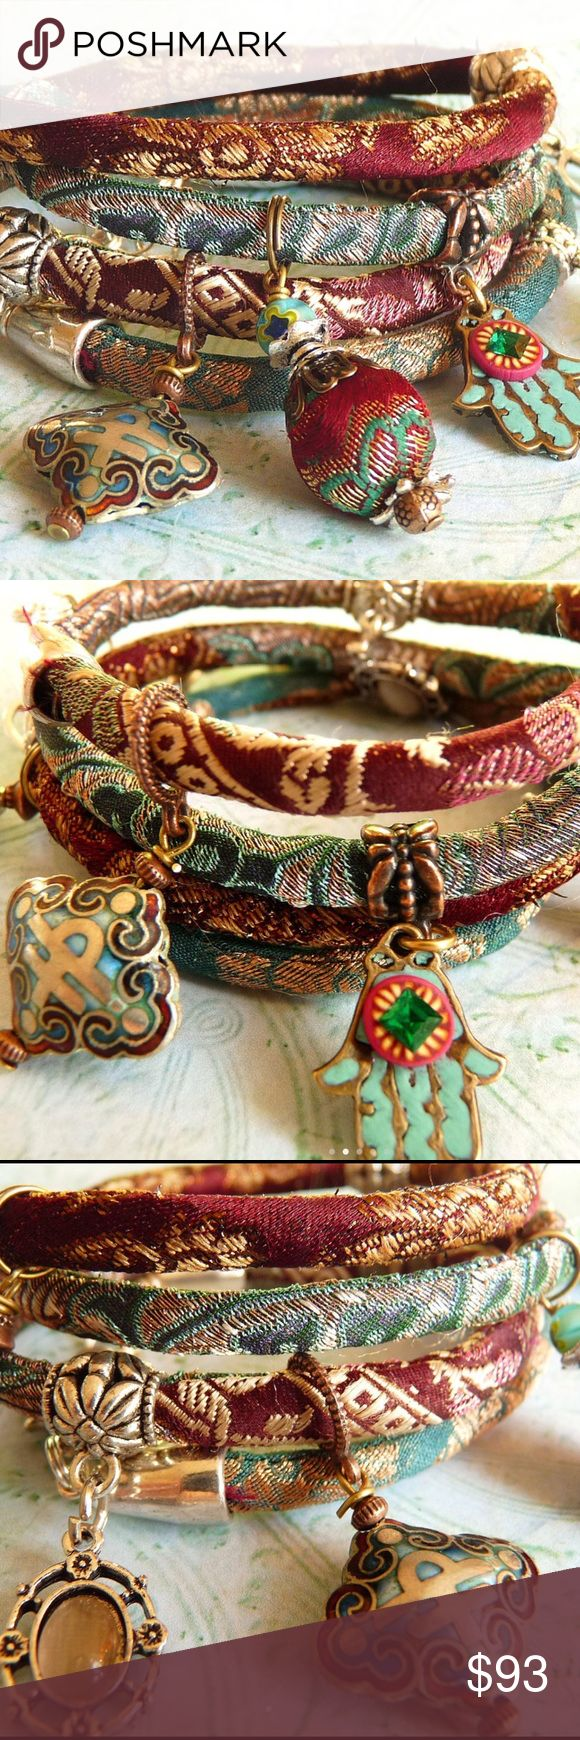 VALENTINES SALE RED WINE BROCADE WRAP BRACELET Made to order  with silver plated teal ornaments, original pure silk brocade from India and strengthened with a cotton cord inside.  Colors are red wine with some shades of teal, while vintage sari silk is used for the border.  The charms and pendants are chosen from a large bead collection from the designer. The medallion pendant and polymer clay object is also made by the designer.  The total length is 30 inches..you can wrap around your wrist…